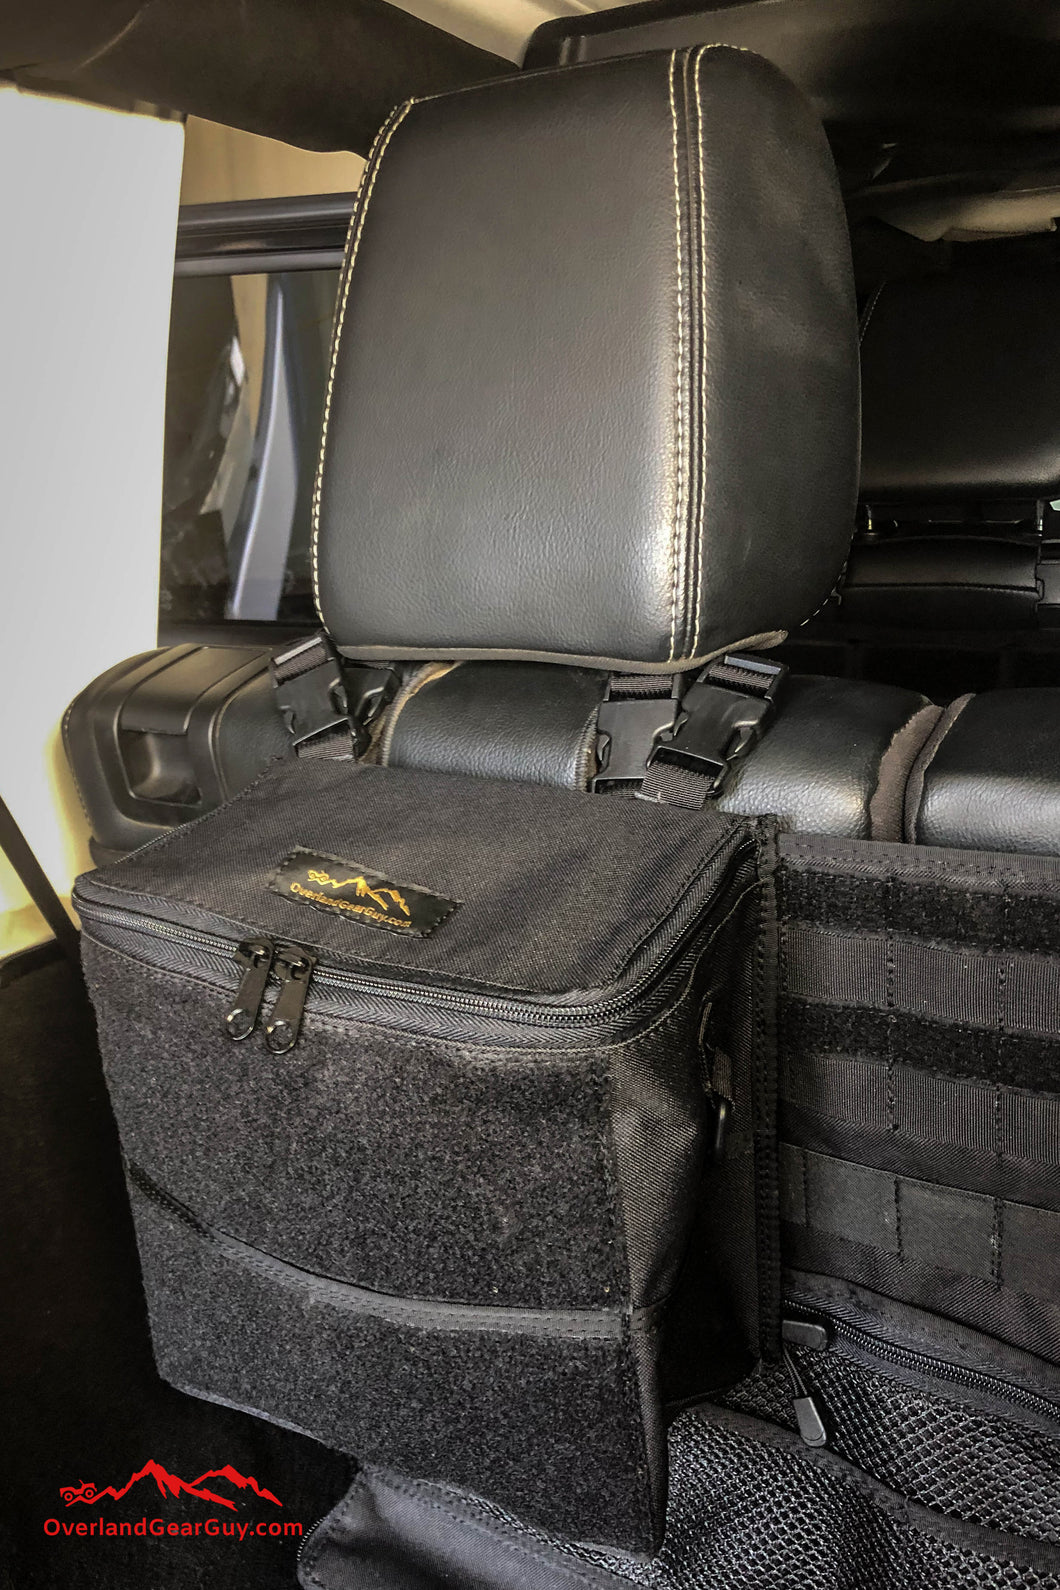 Sequoia Mini Headrest Bag by Overland Gear Guy